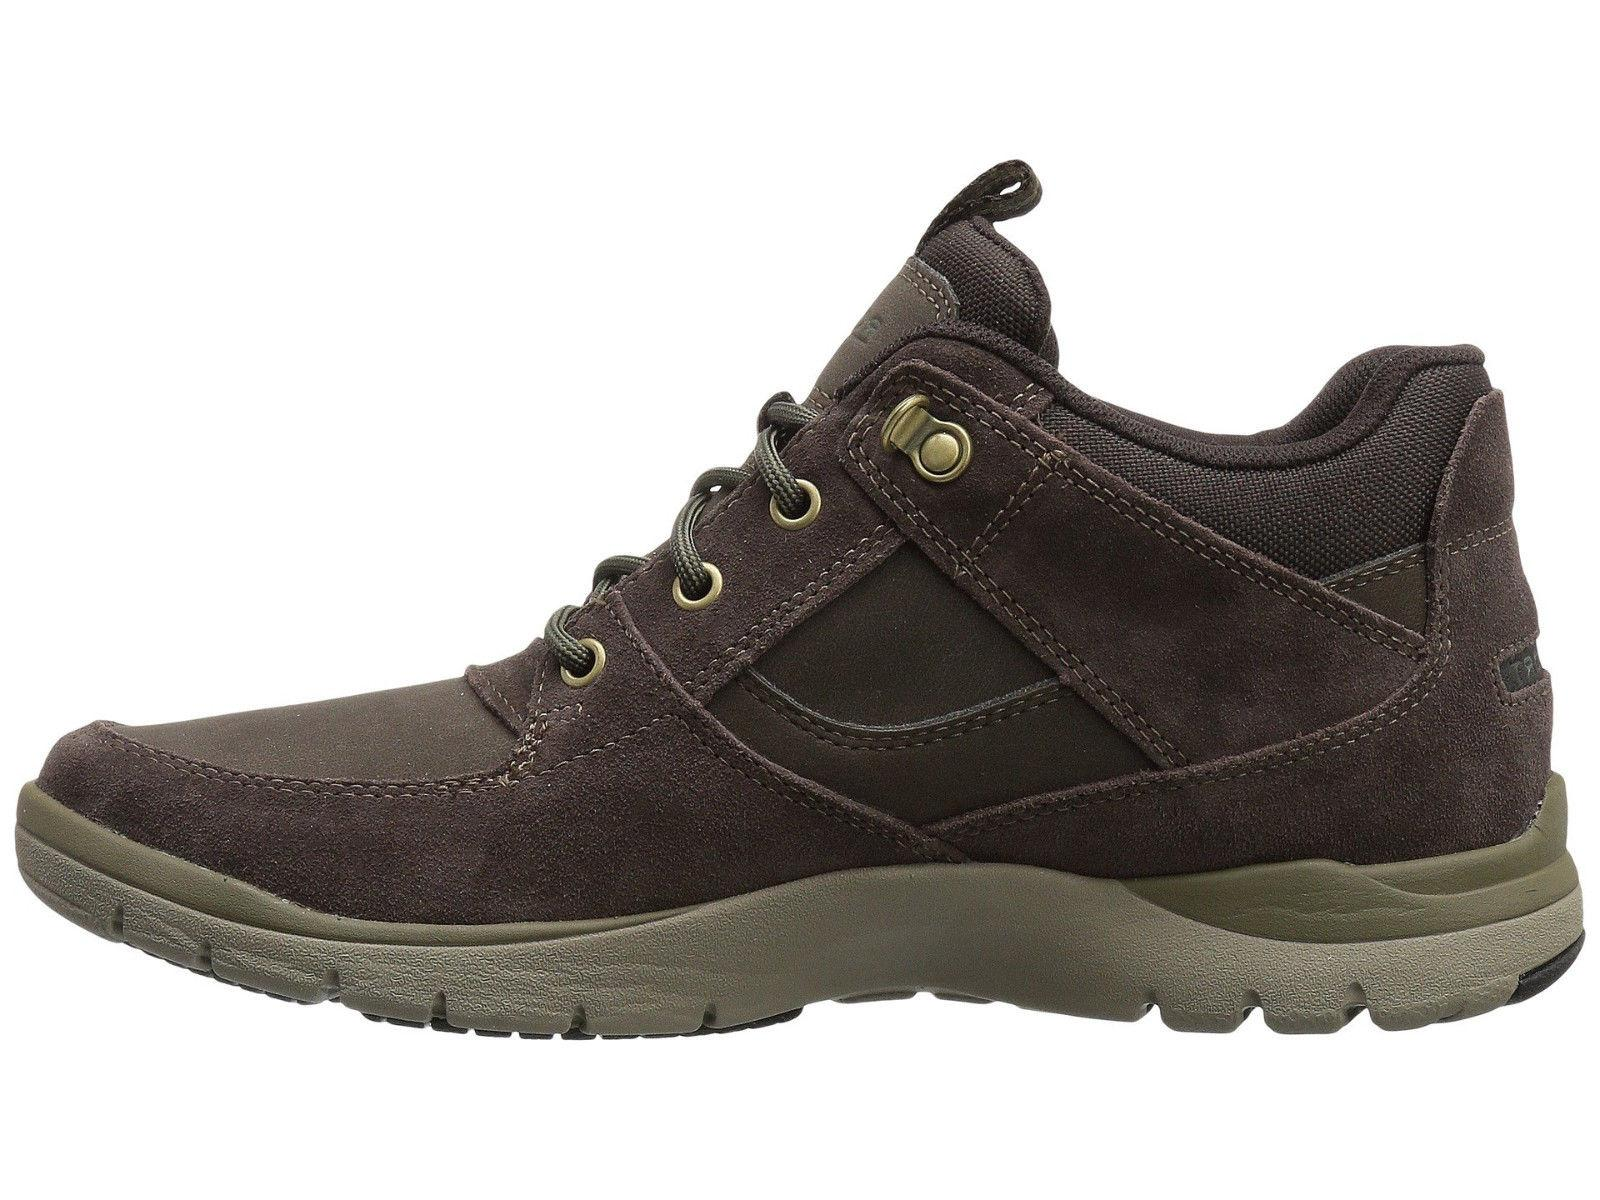 Rockport Men's Mid Boot, Brown, Size Box